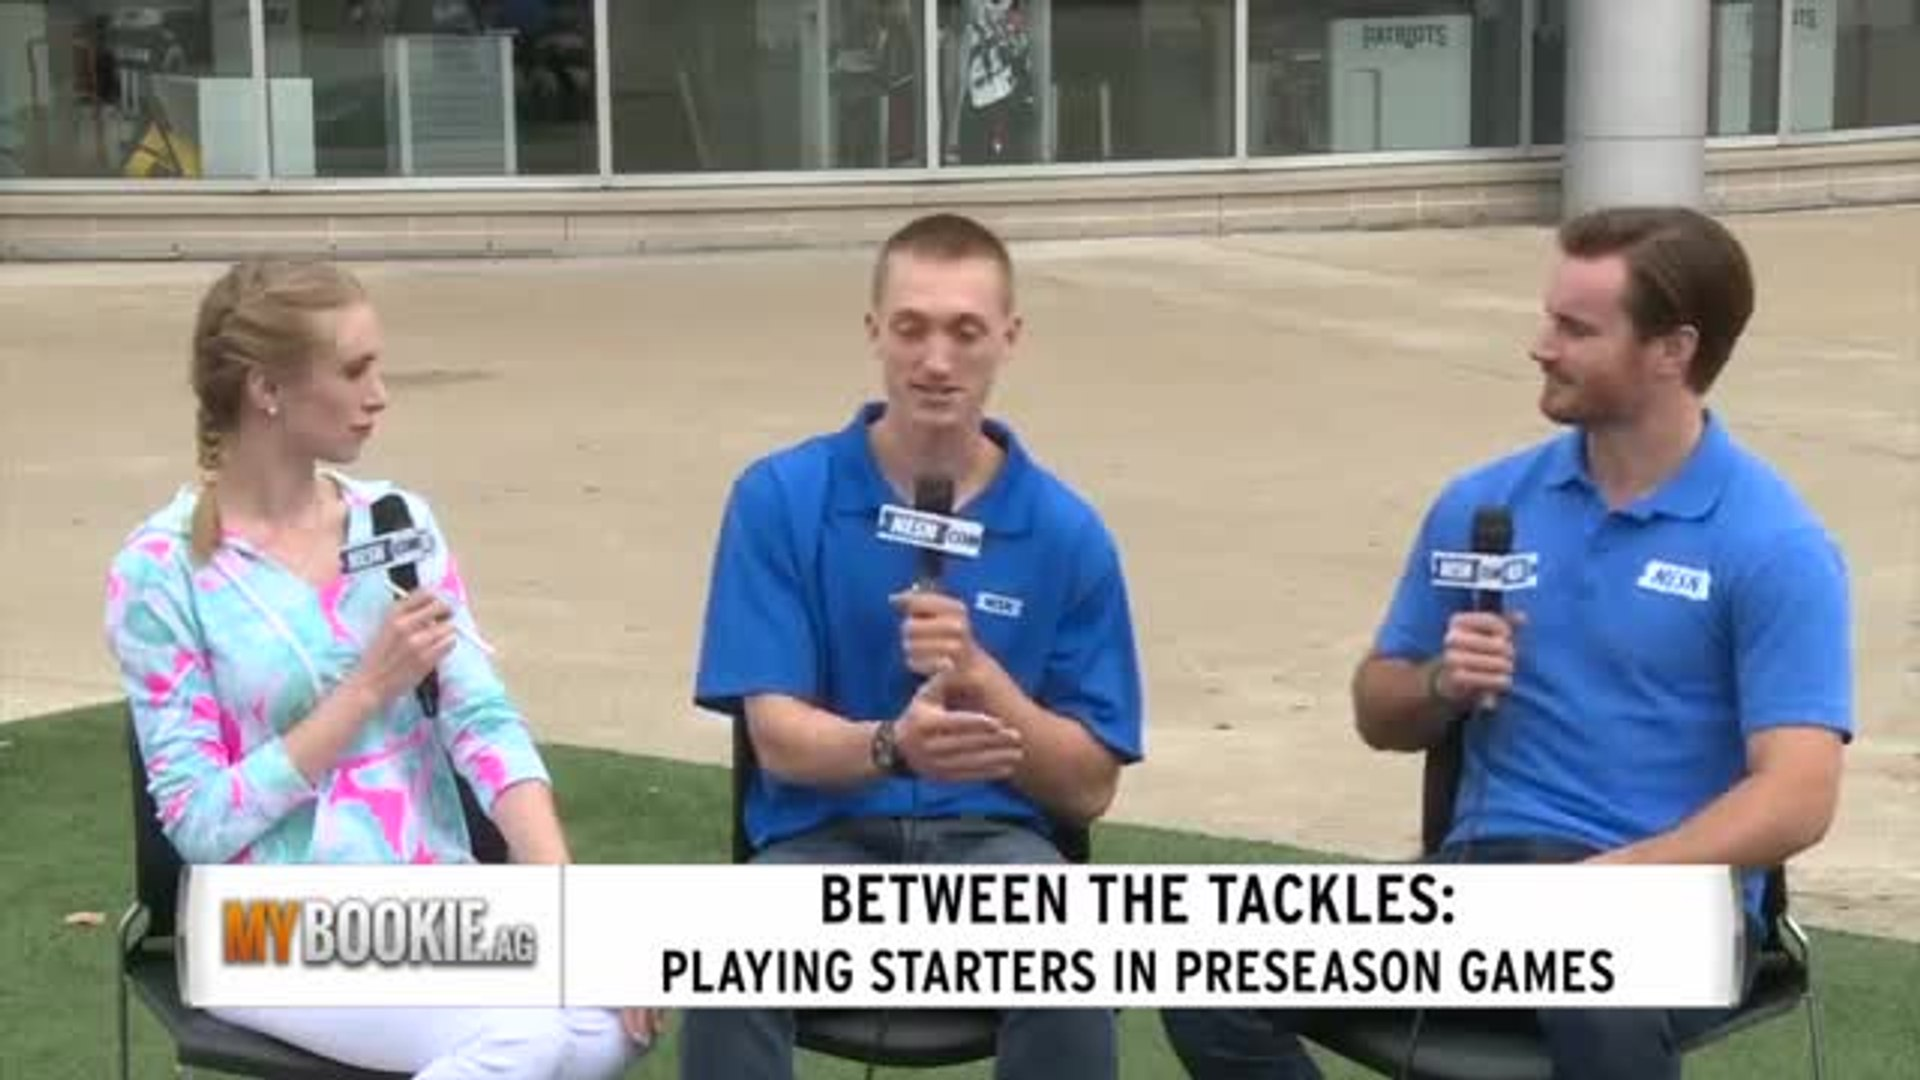 Should Star Players Play In NFL Preseason Games?